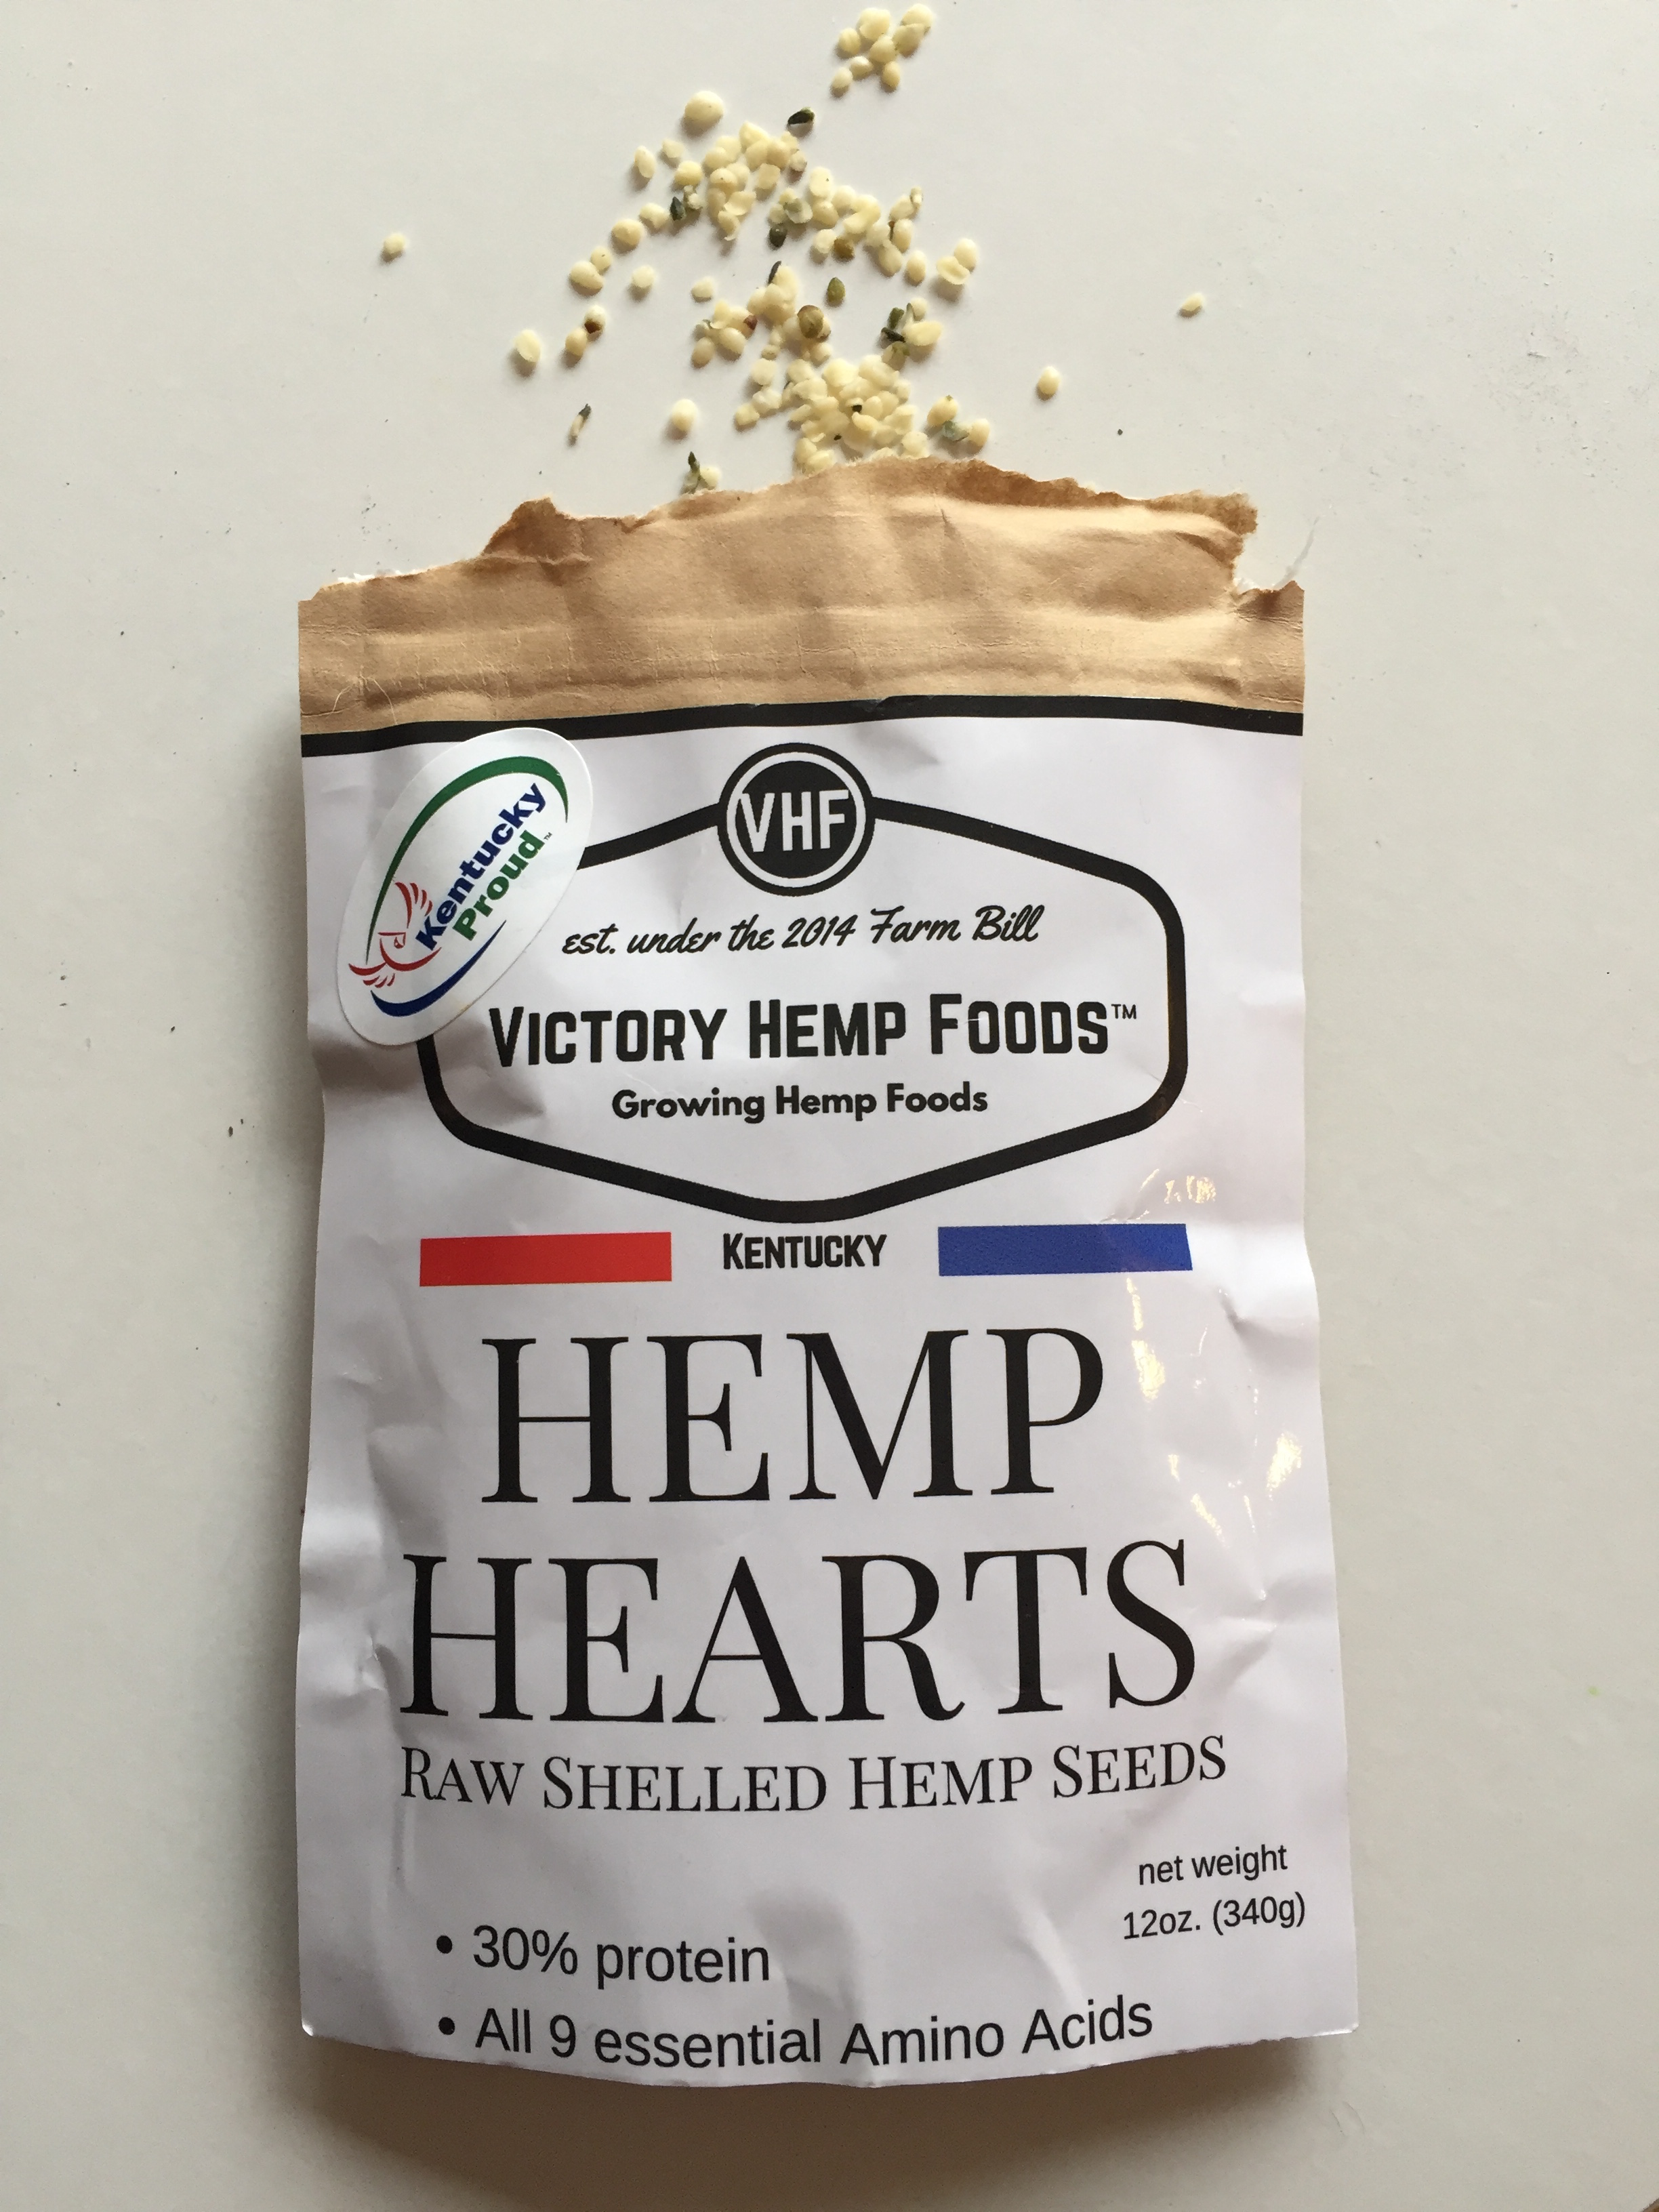 Fresh and nutritious hemp hearts from Victory Hemp Foods in Kentucky.